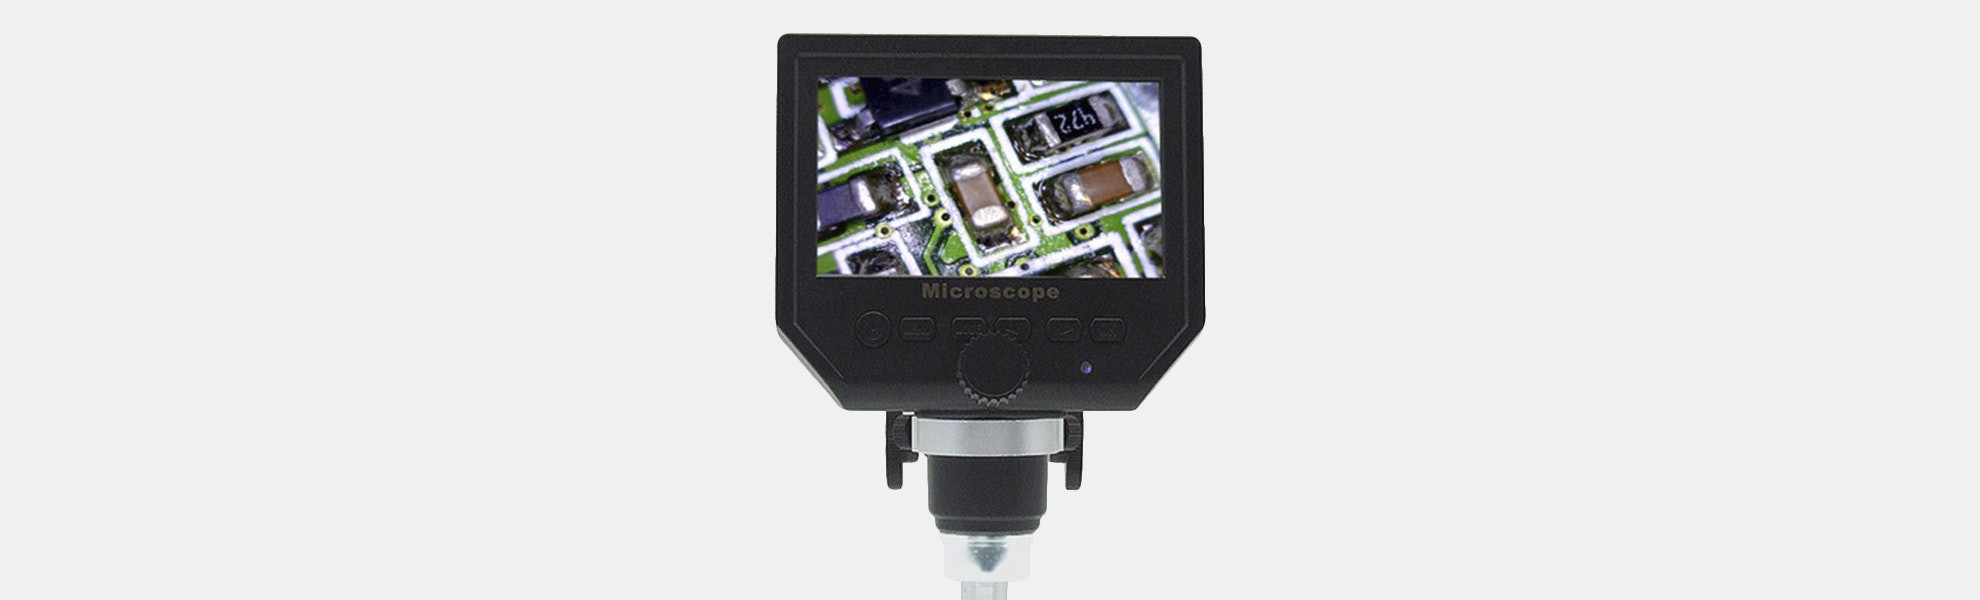 "Elecrow 1–600X Portable Microscope w/ 4.3"" HD LCD"